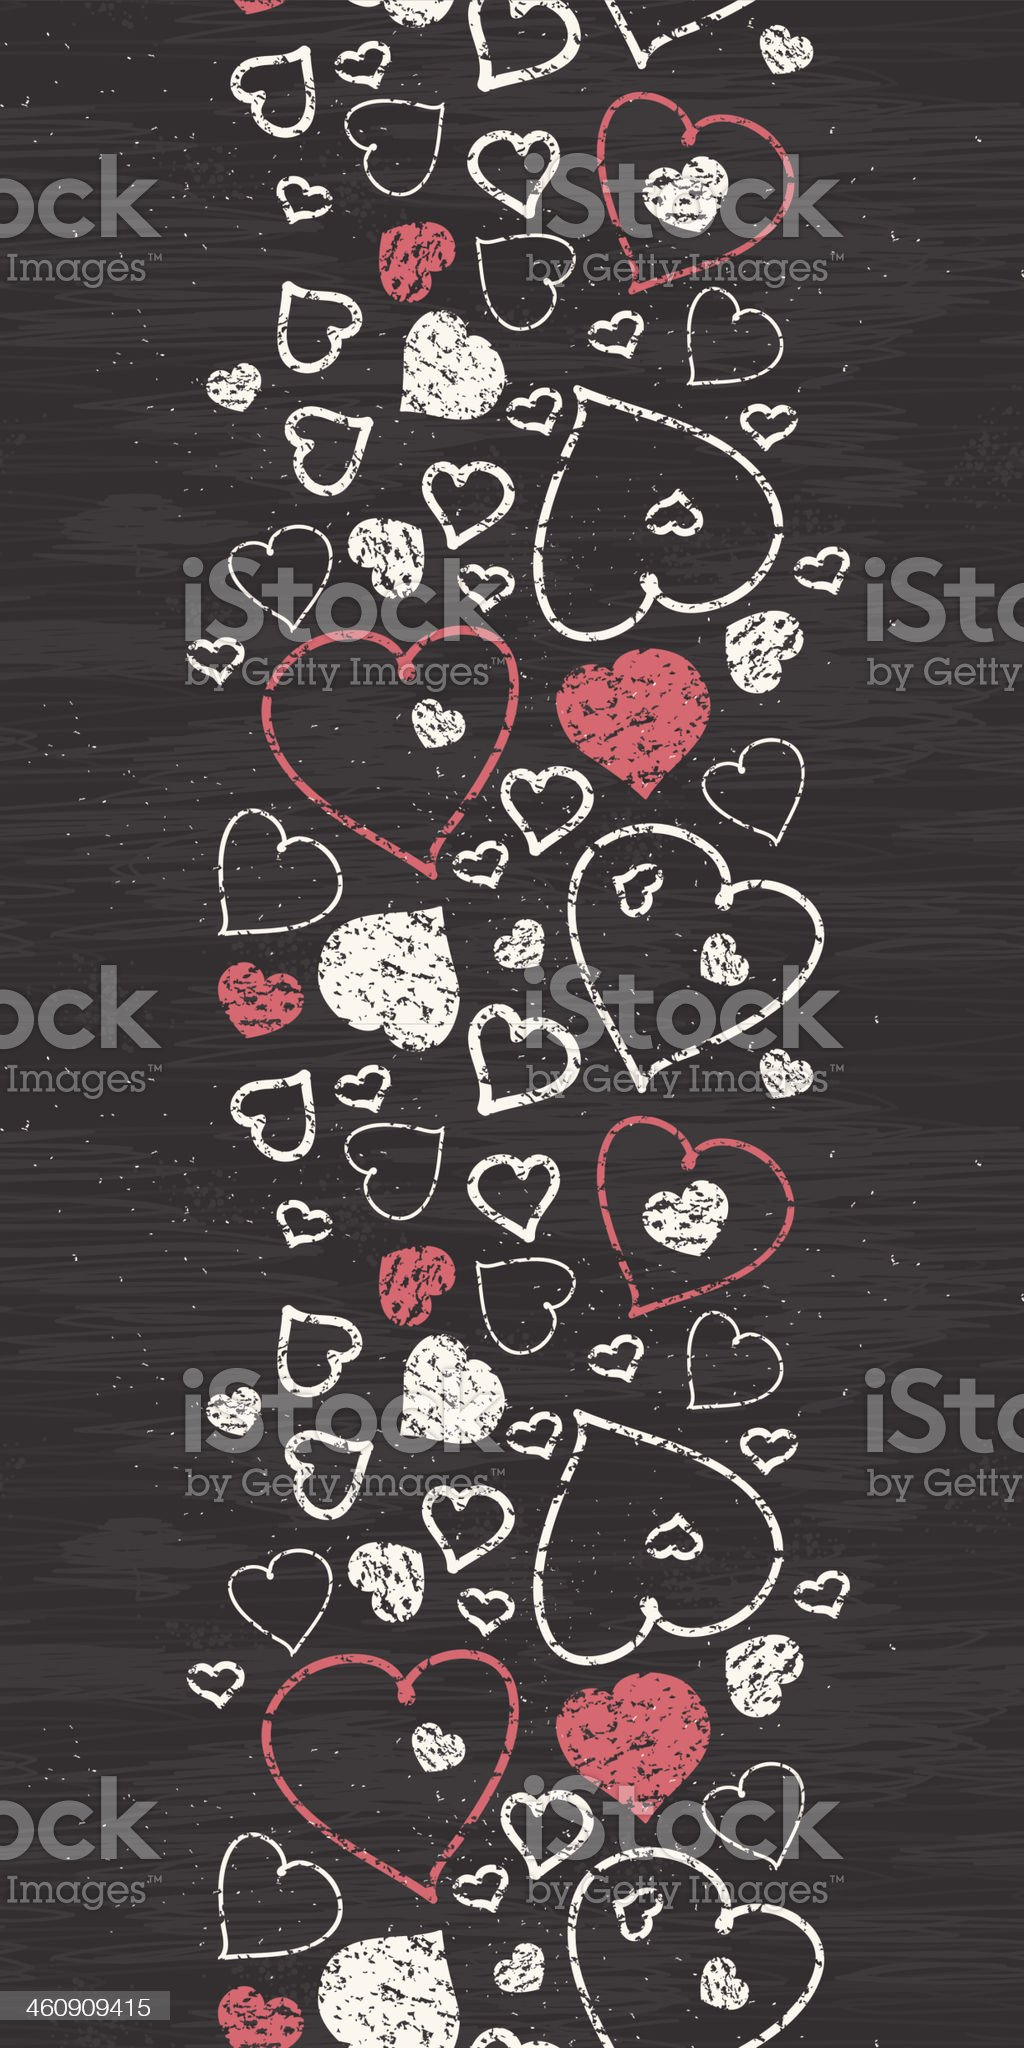 Chalkboard art hearts vertical border seamless pattern background royalty-free stock vector art